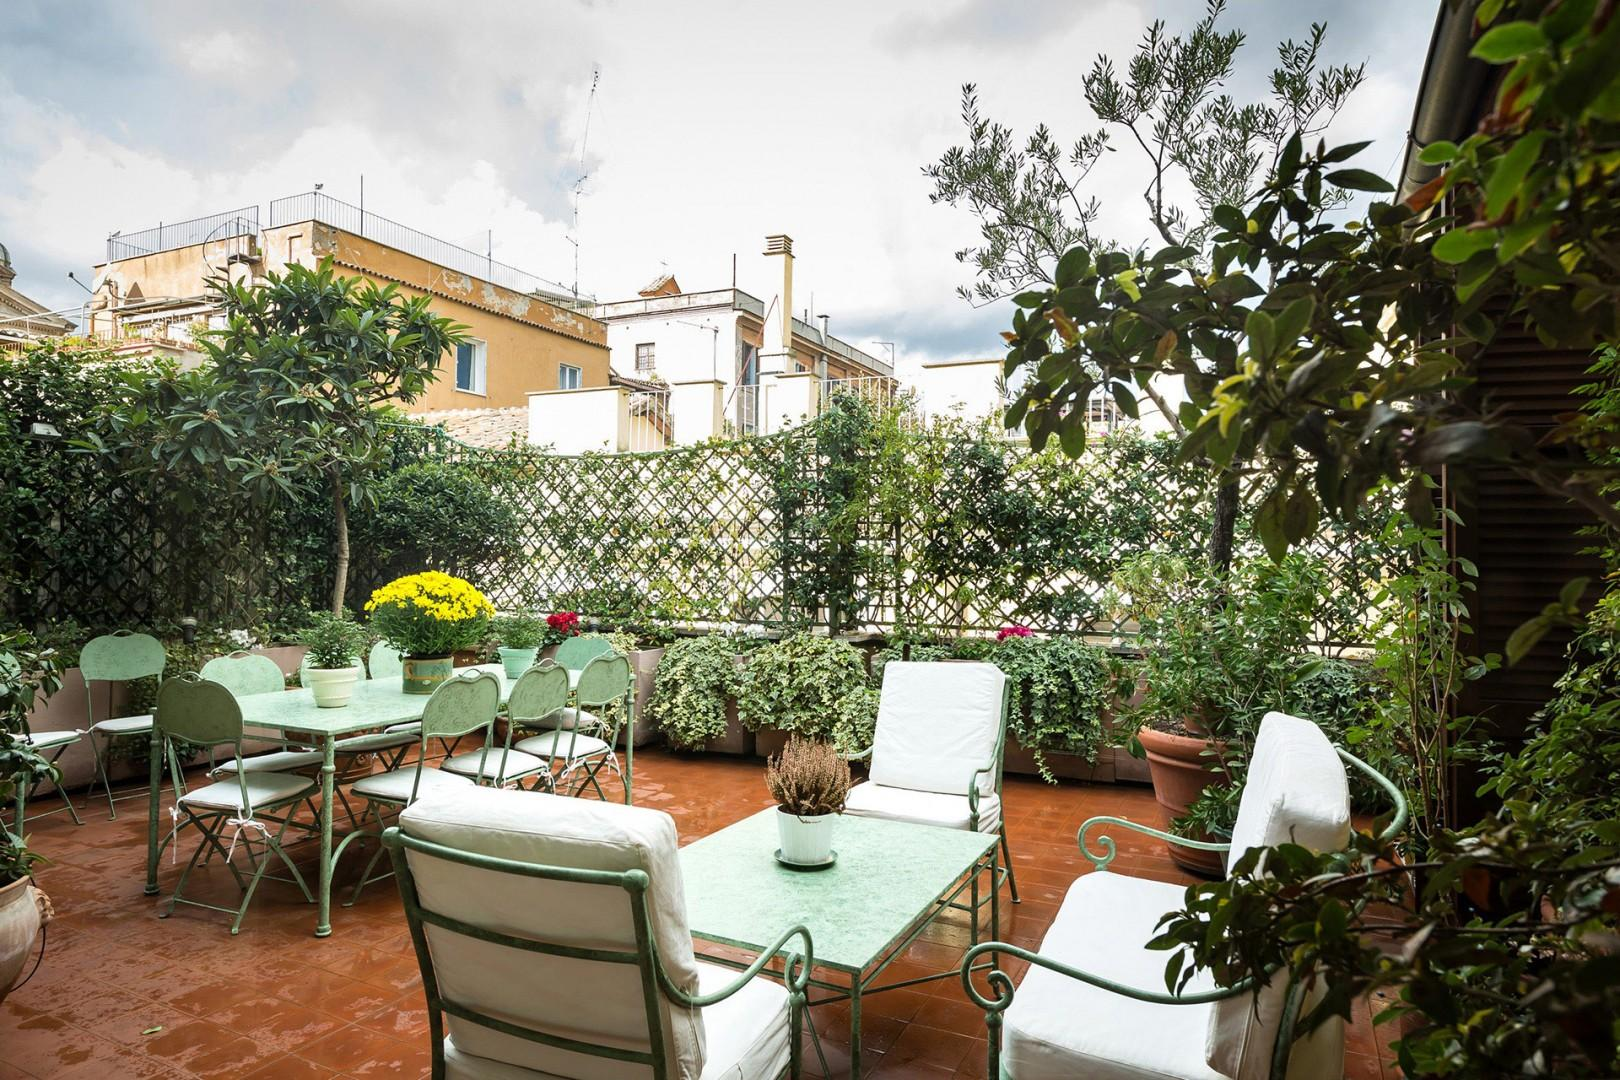 The magnificent terrace is filled with mature shrubs and flowers